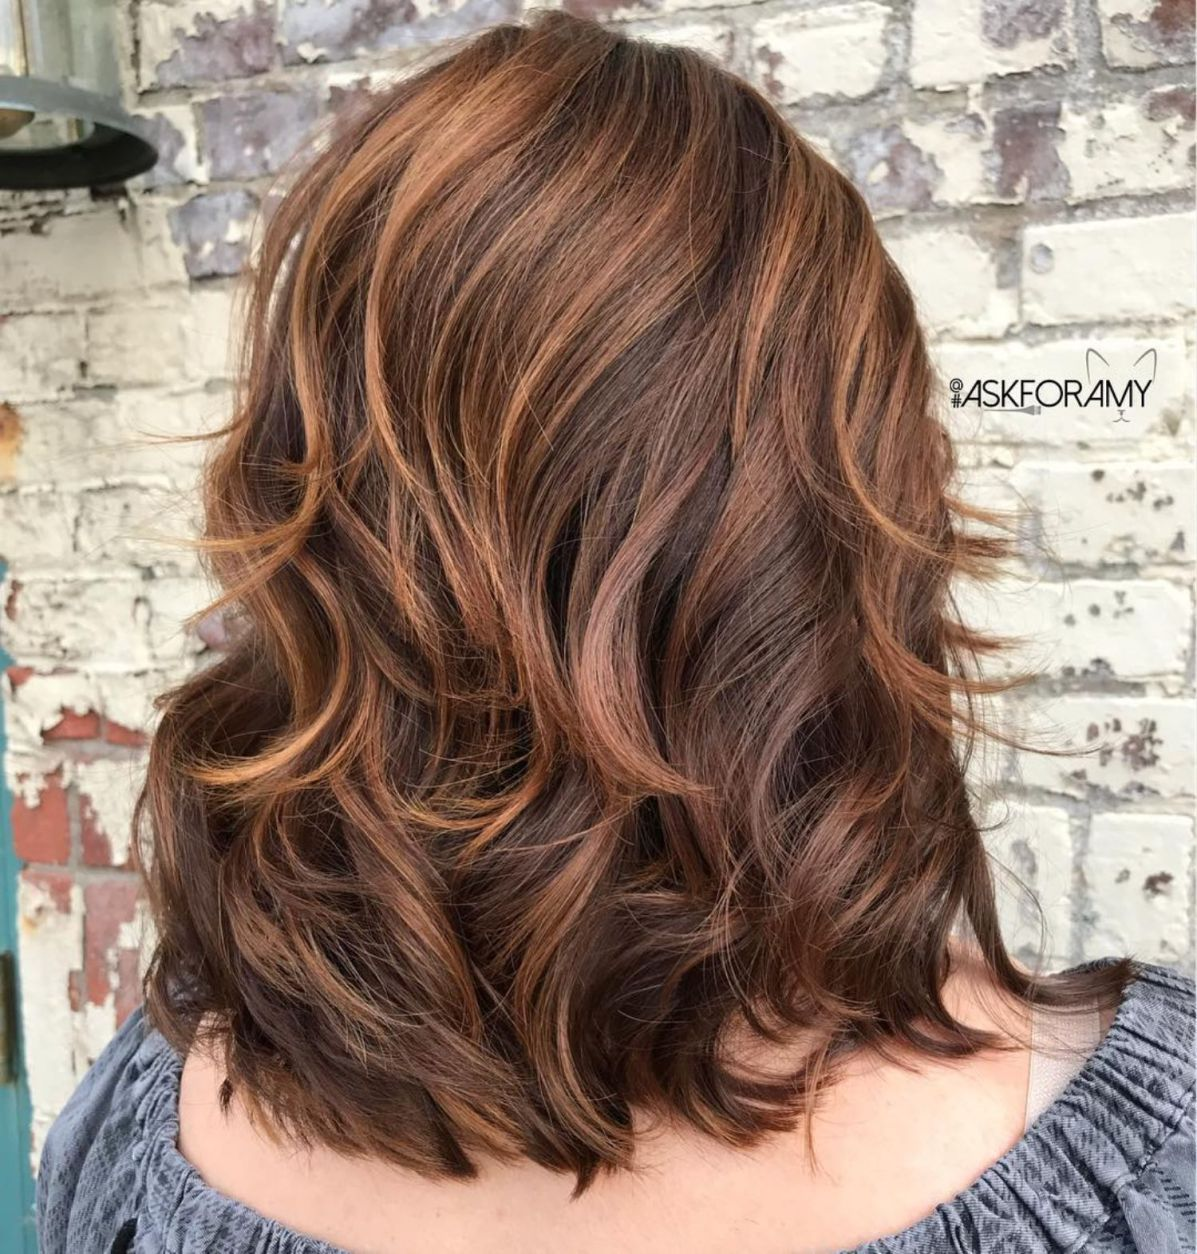 Chocolate Hairstyle With Caramel Highlights Lang Haar In Laagjes Kapsel In Laagjes Kapsels